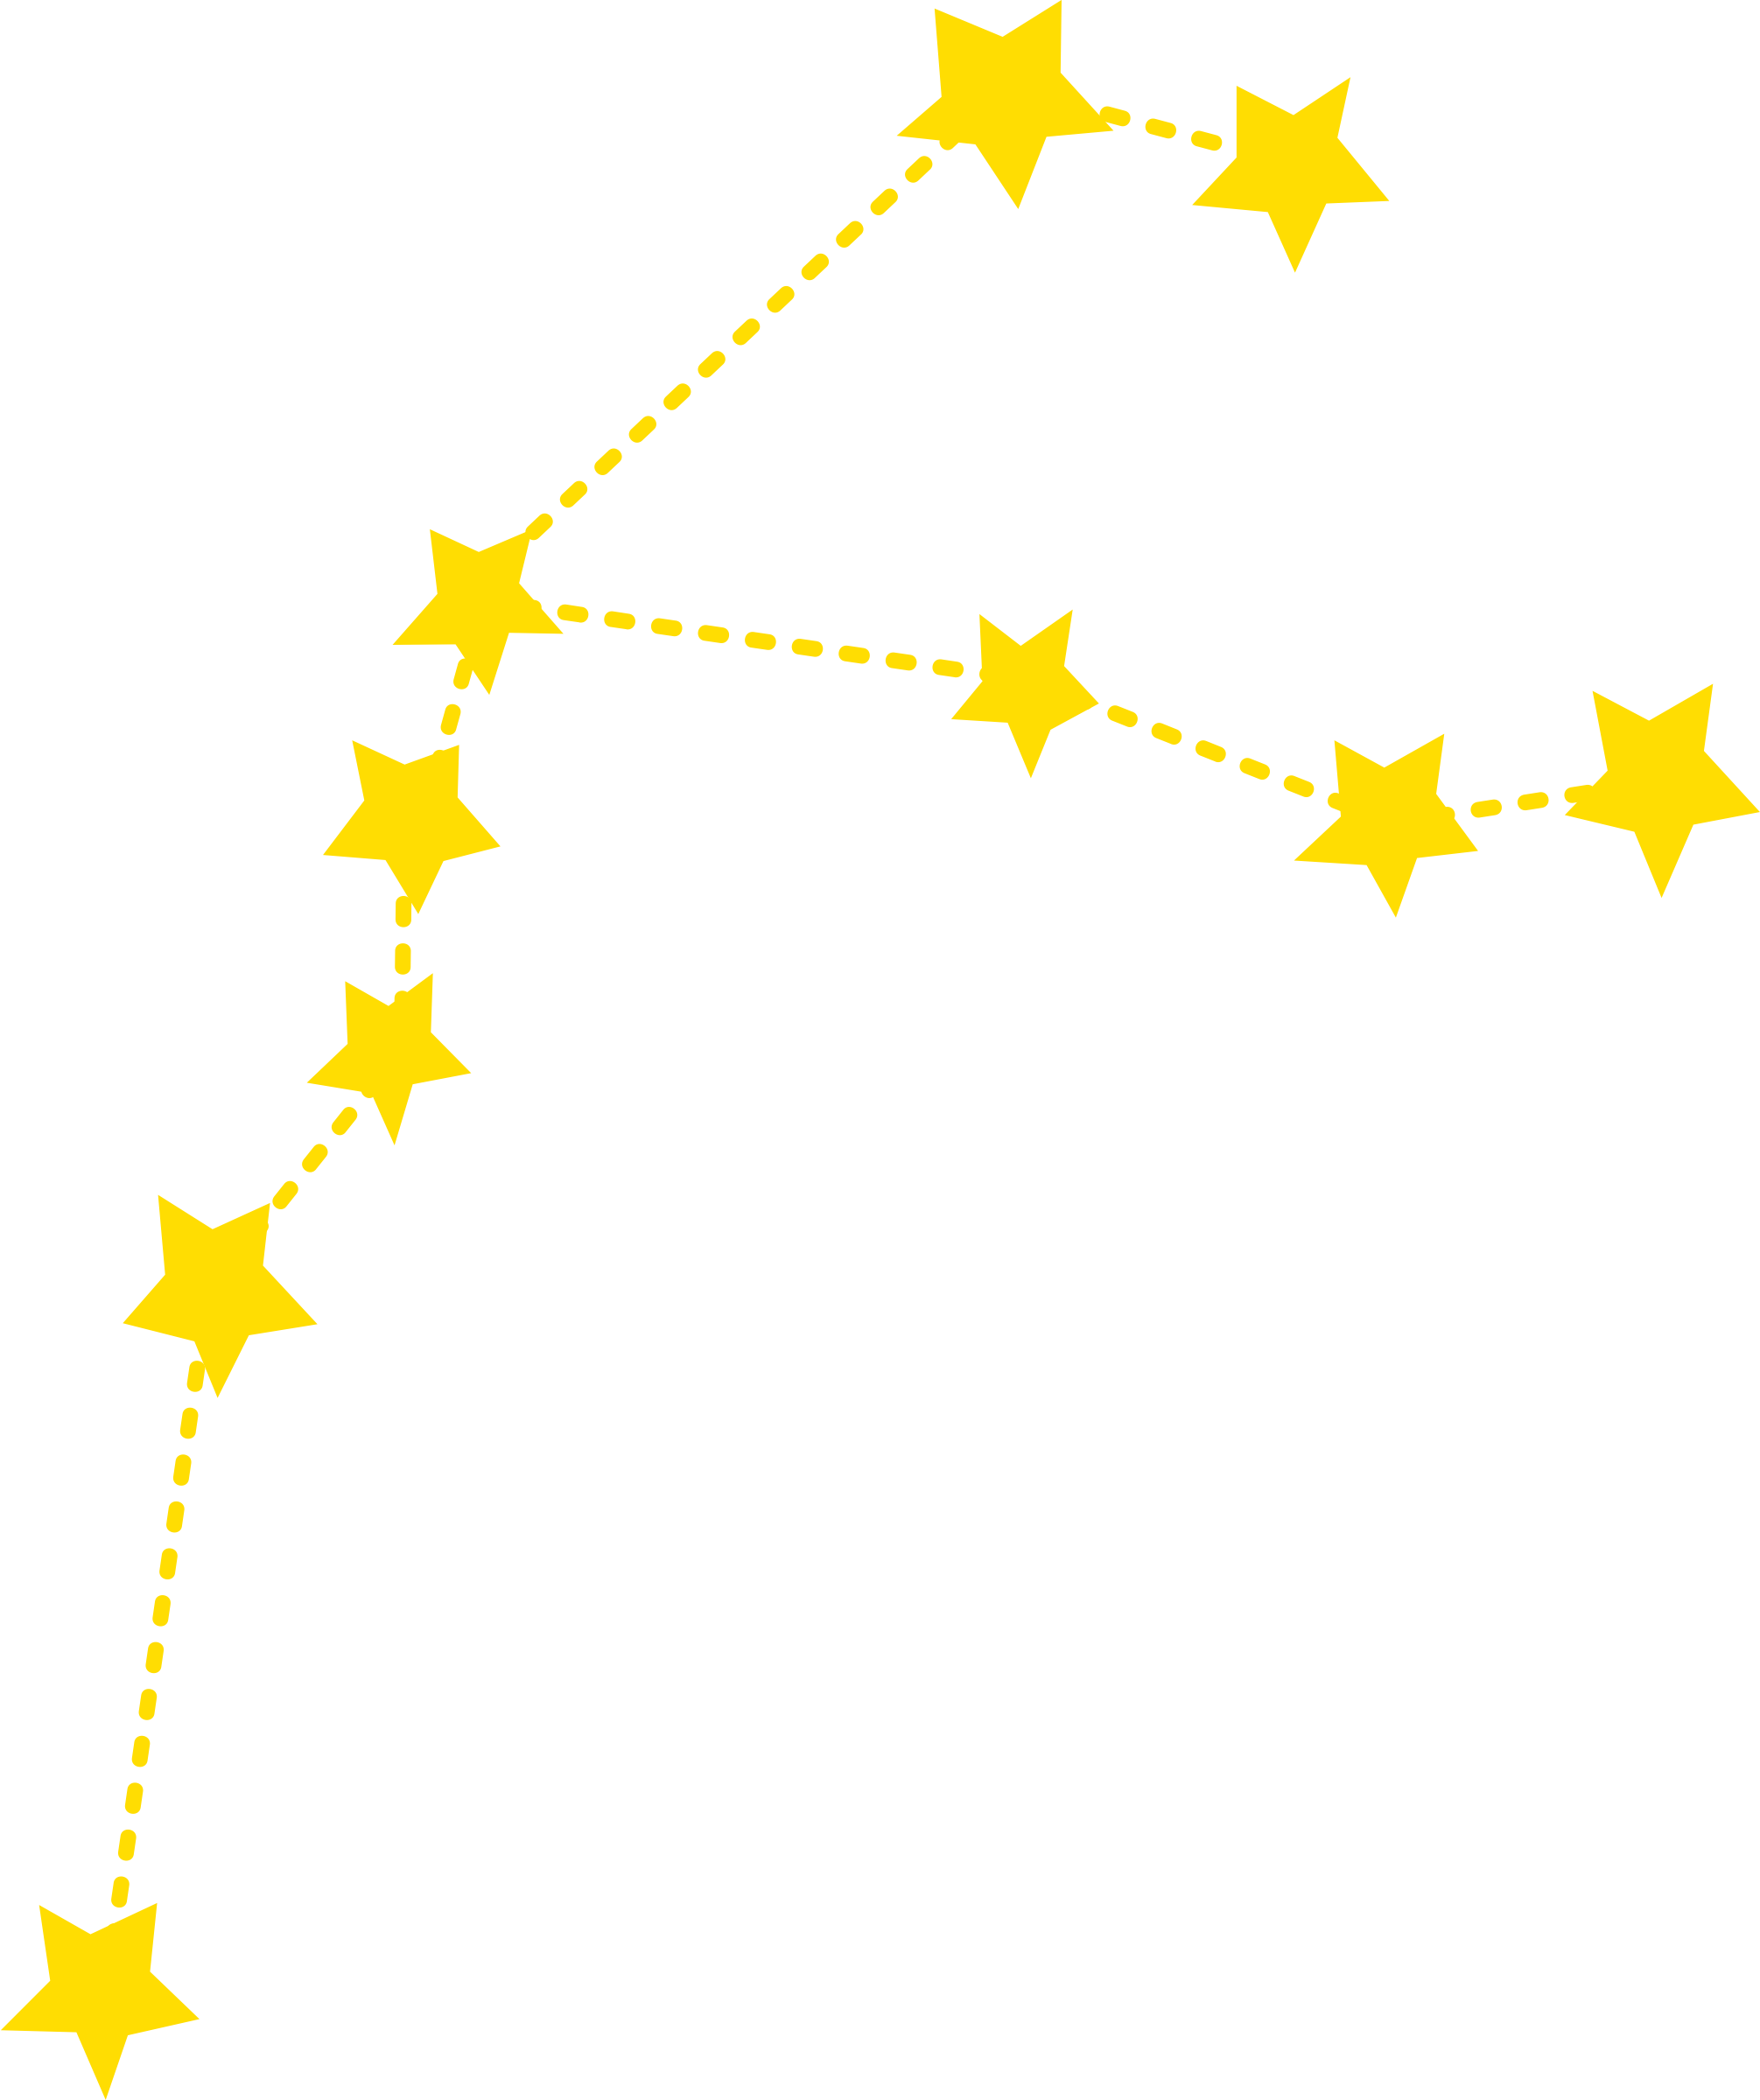 clip freeuse download Star constellations clip free. Constellation vector.